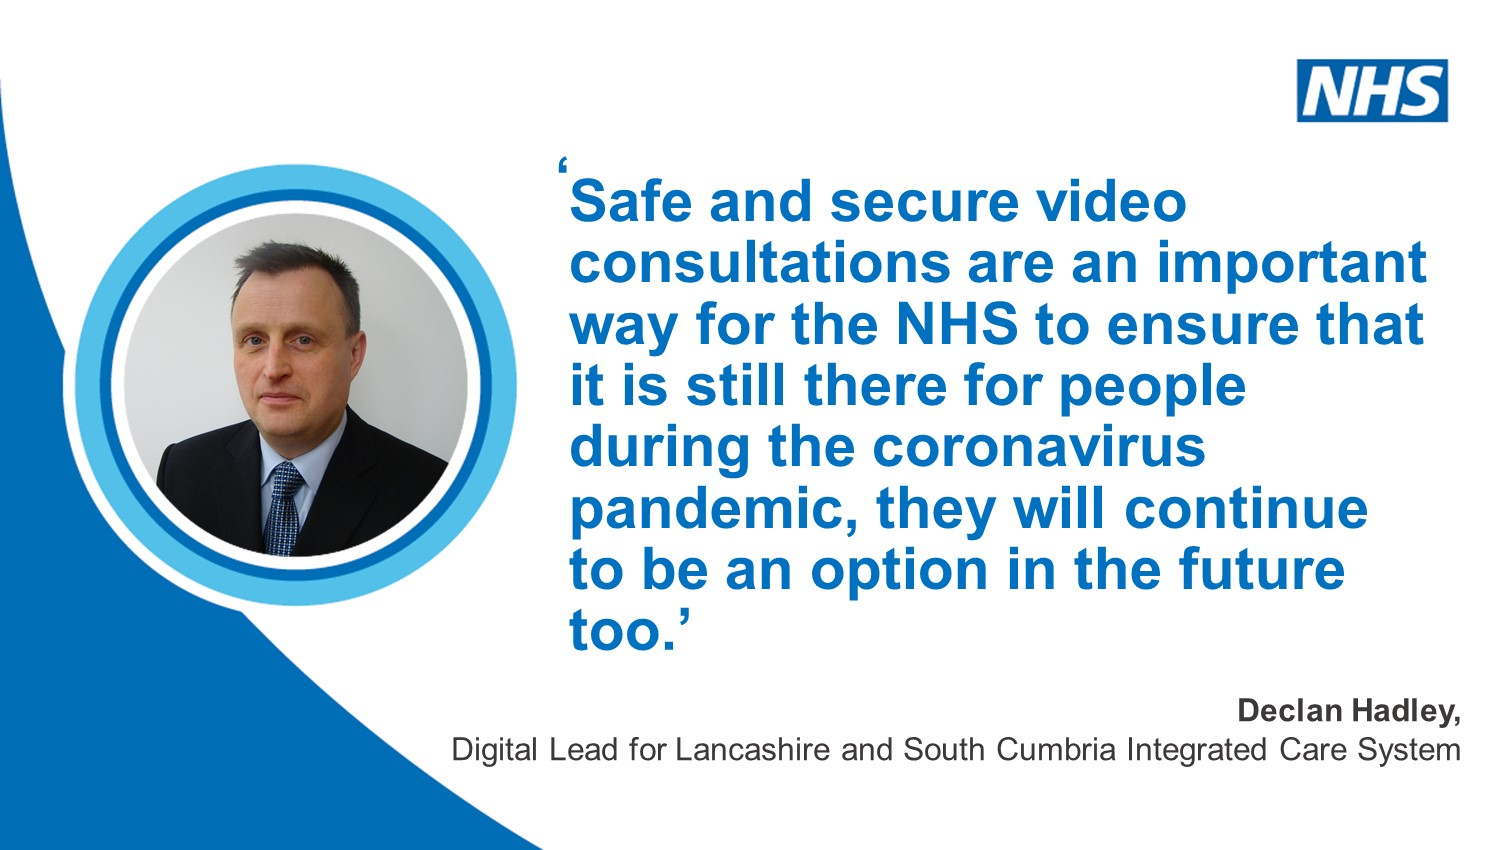 GP practices across Lancashire and South Cumbria are now just a video call away